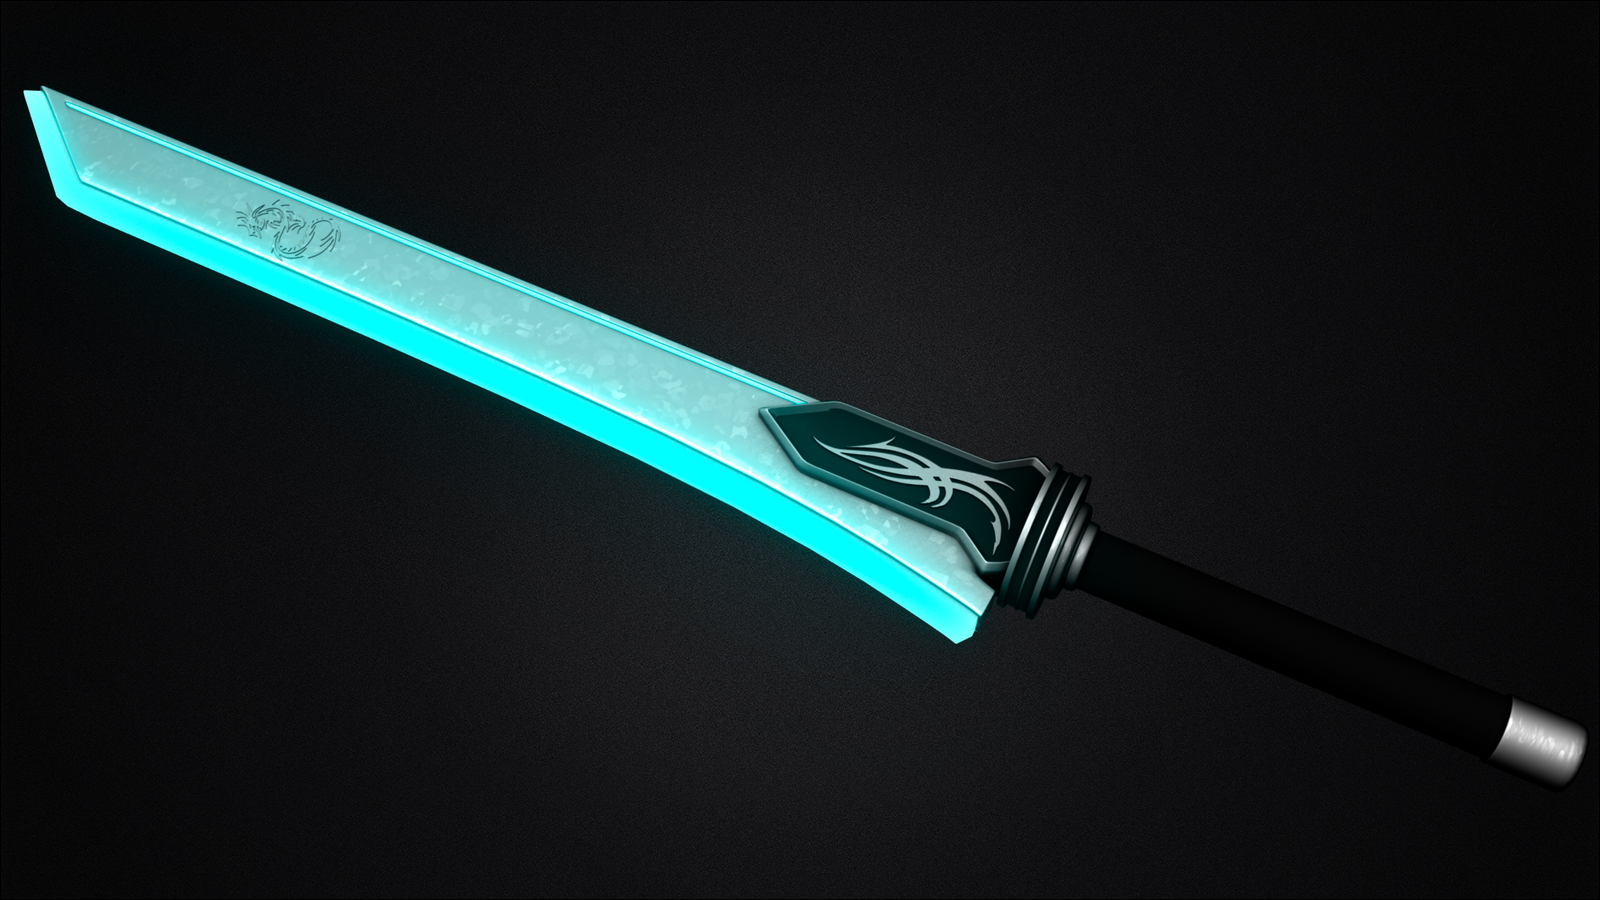 Sword Futuristic Weapons For Pinterest